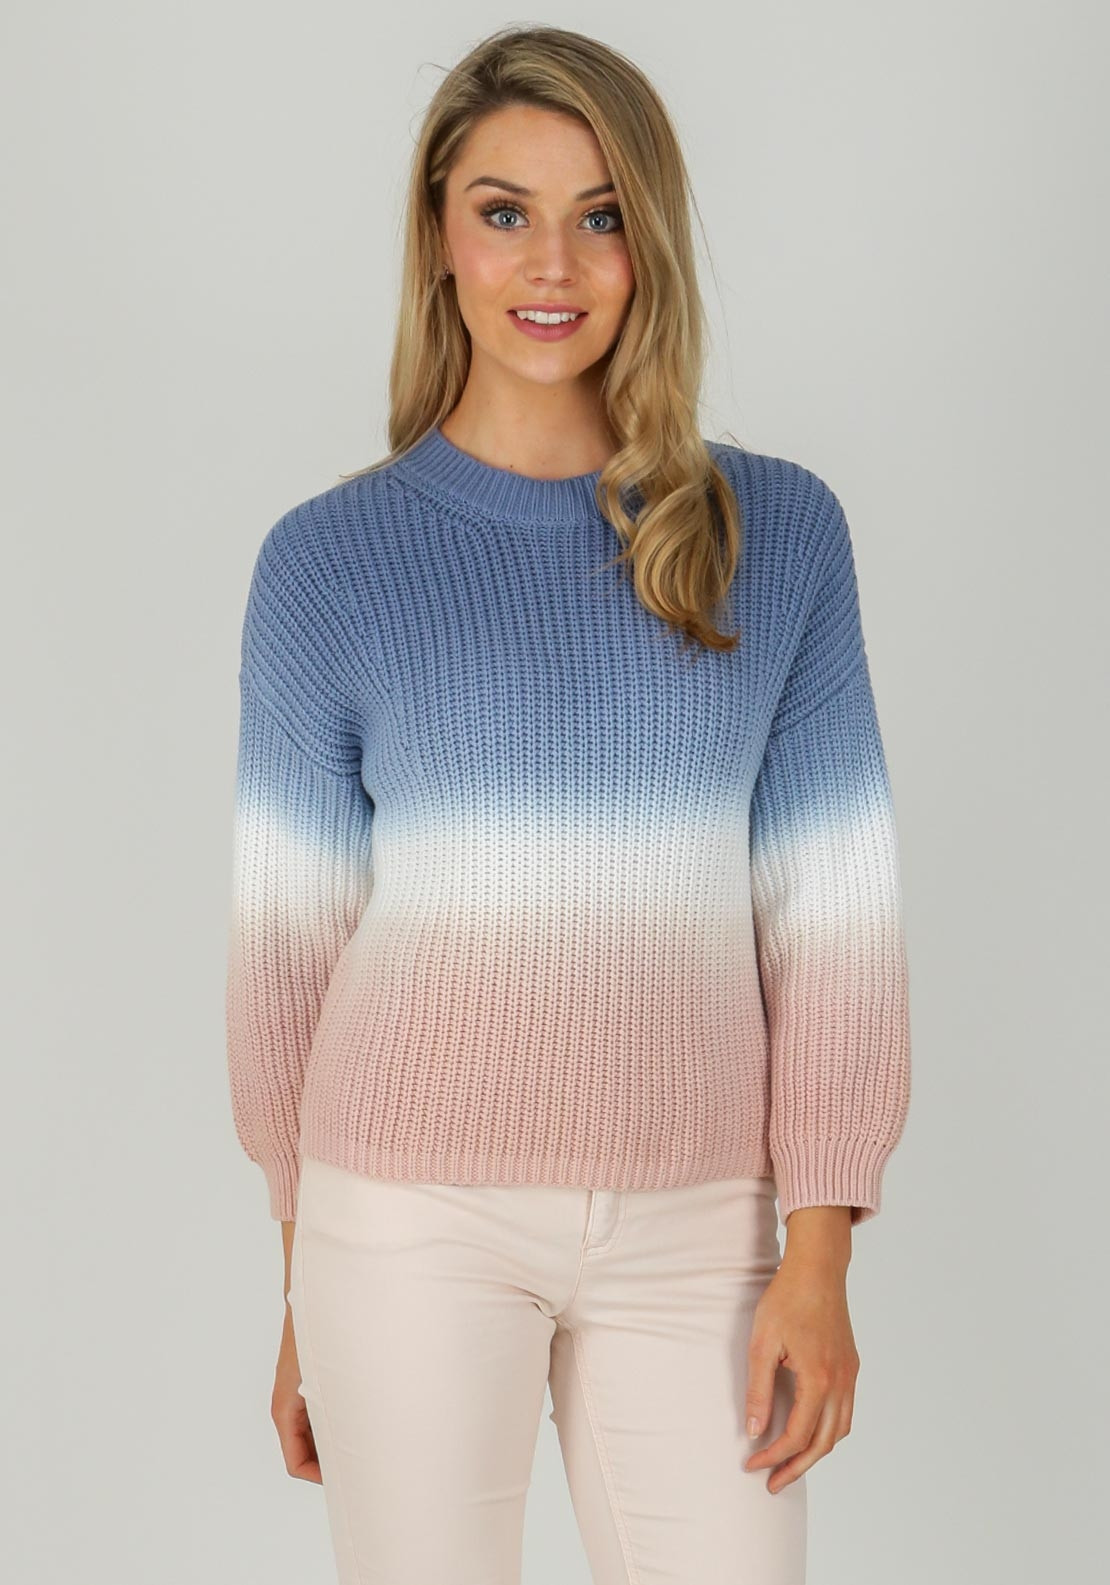 6a2a87eef61e24 Oui Two Tone Chunky Knit Jumper, Blue & Pink | McElhinneys